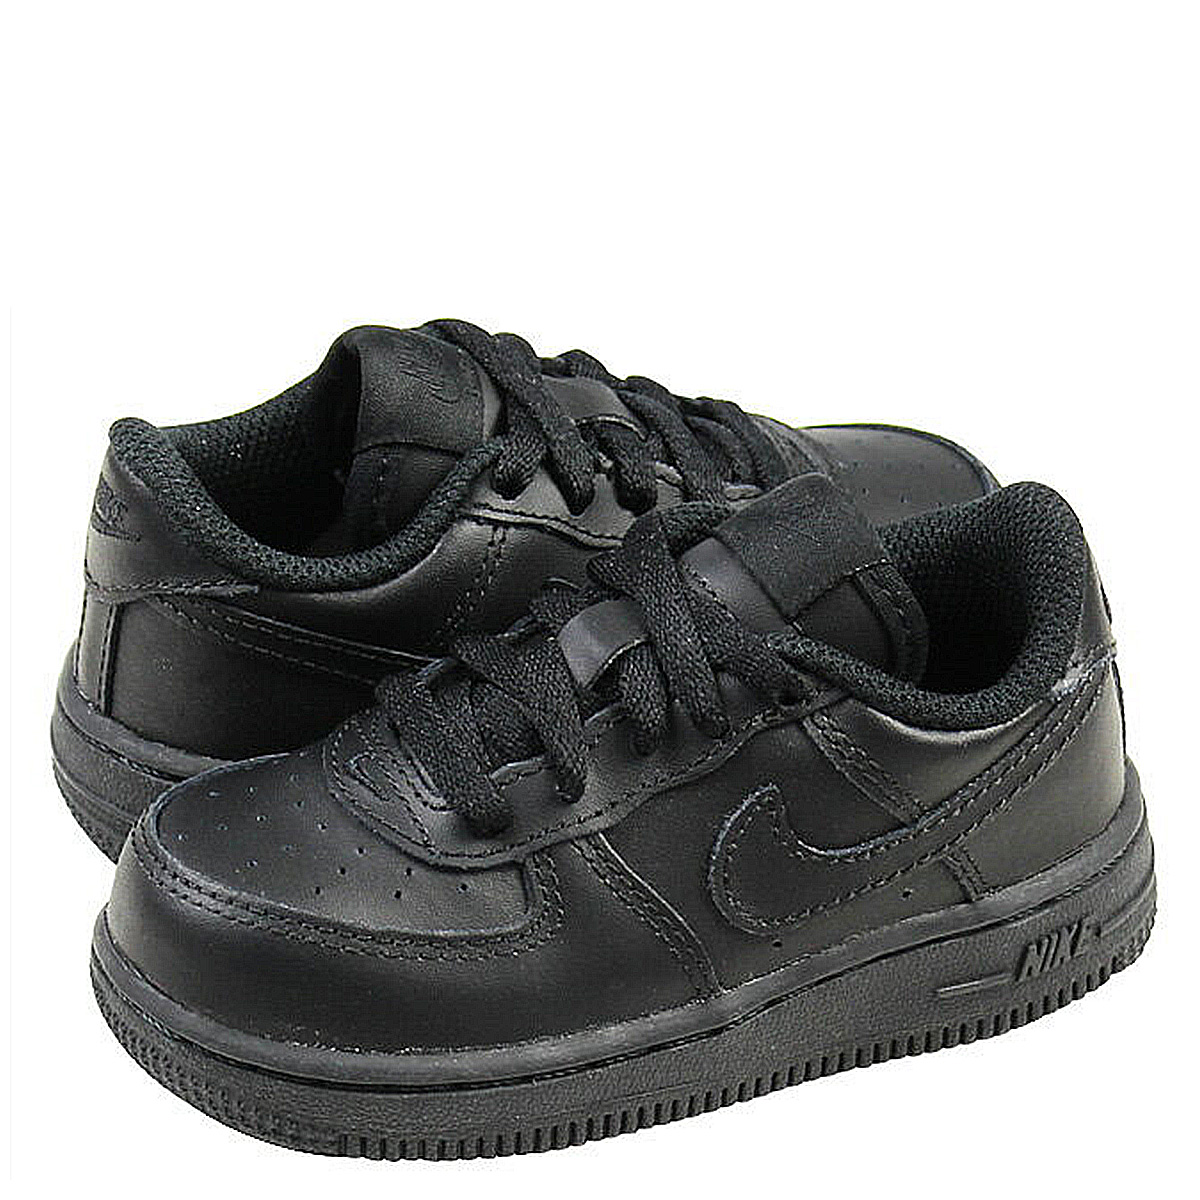 690b3bc904bc Nike NIKE baby kids AIR FORCE 1 LOW TD sneakers air force 1 low toddler  leather ...